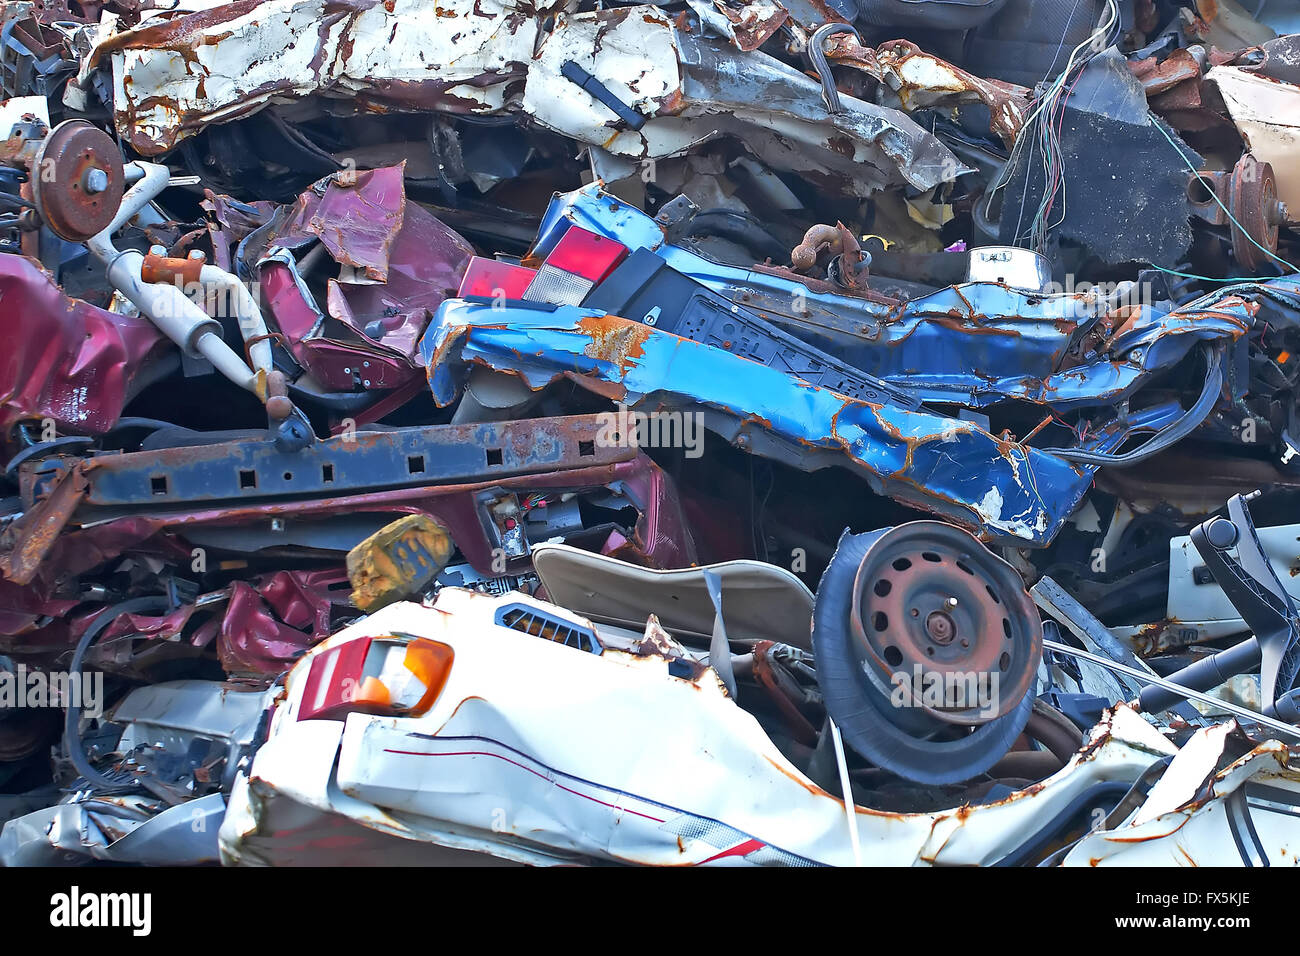 Junkyard metal in a big pile and different colors - Stock Image